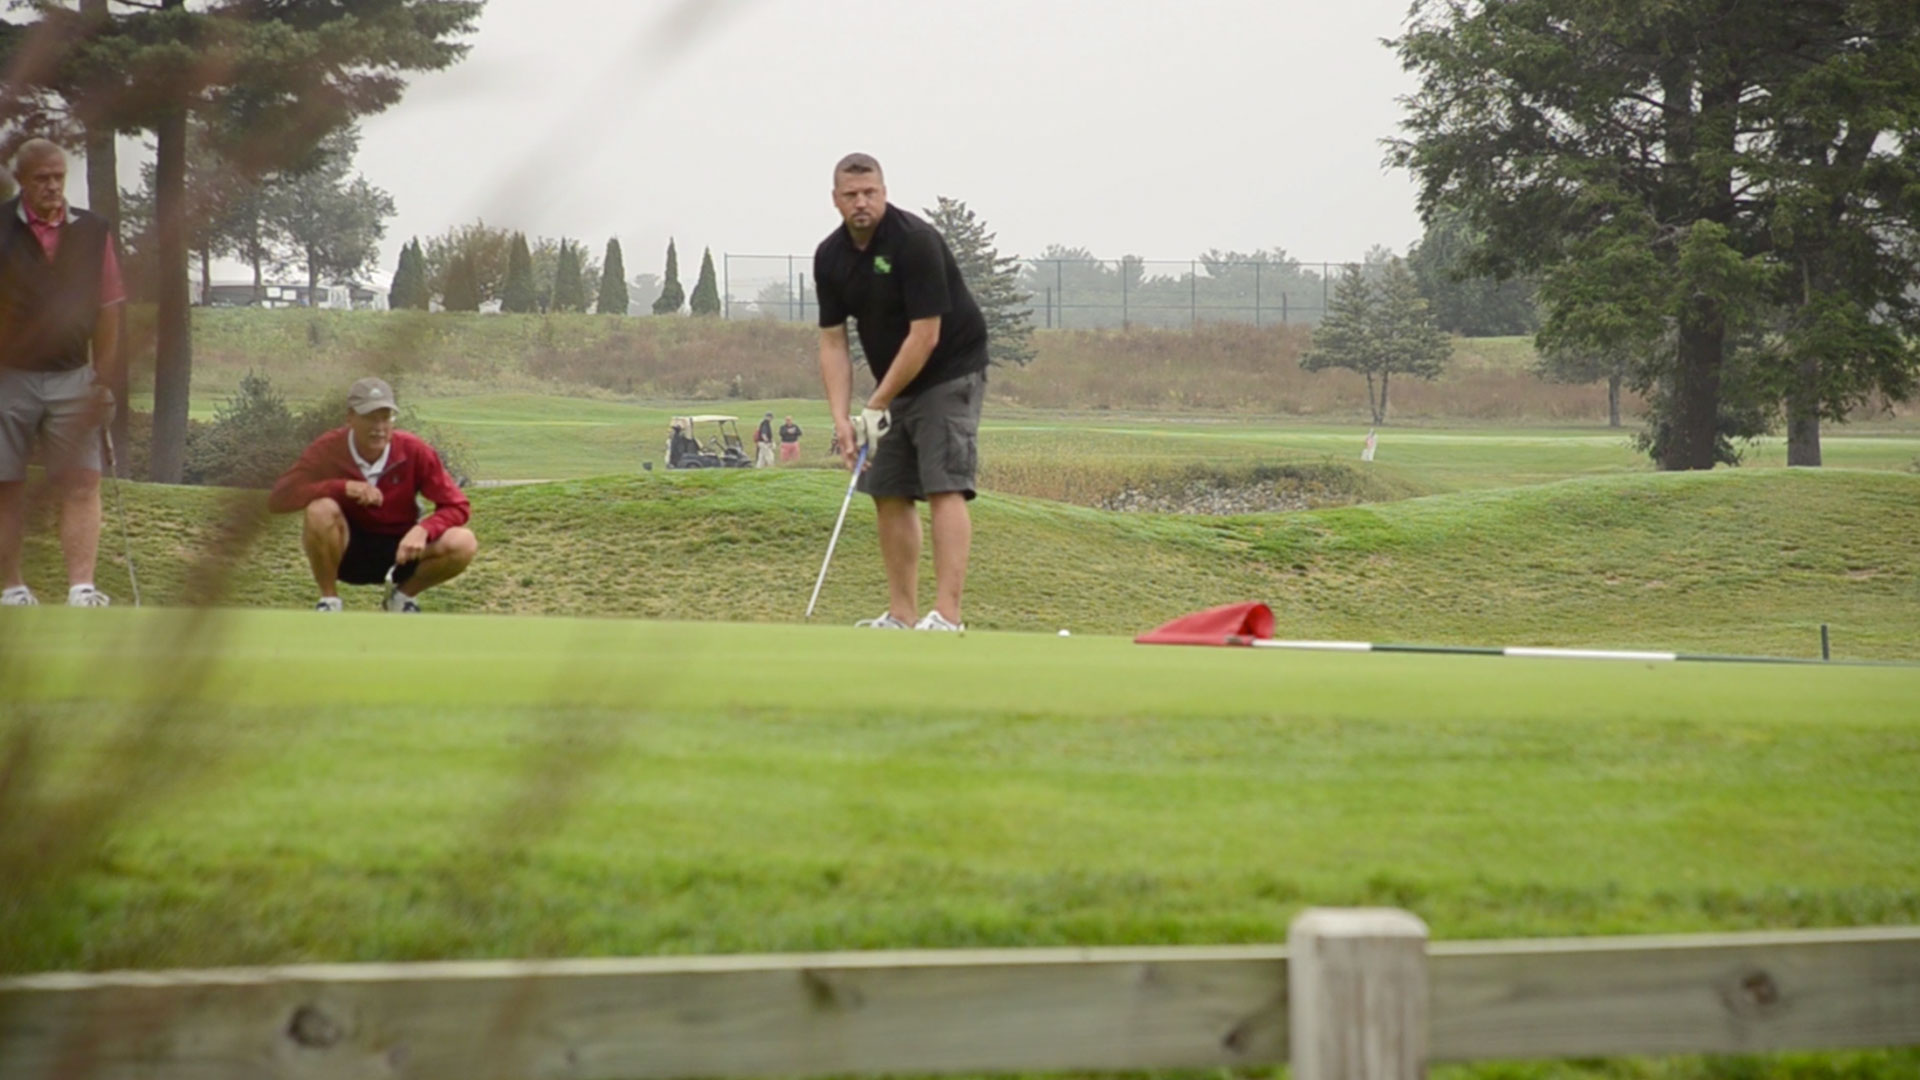 [VIDEO] The Golf Tournament Is Just Weeks Away